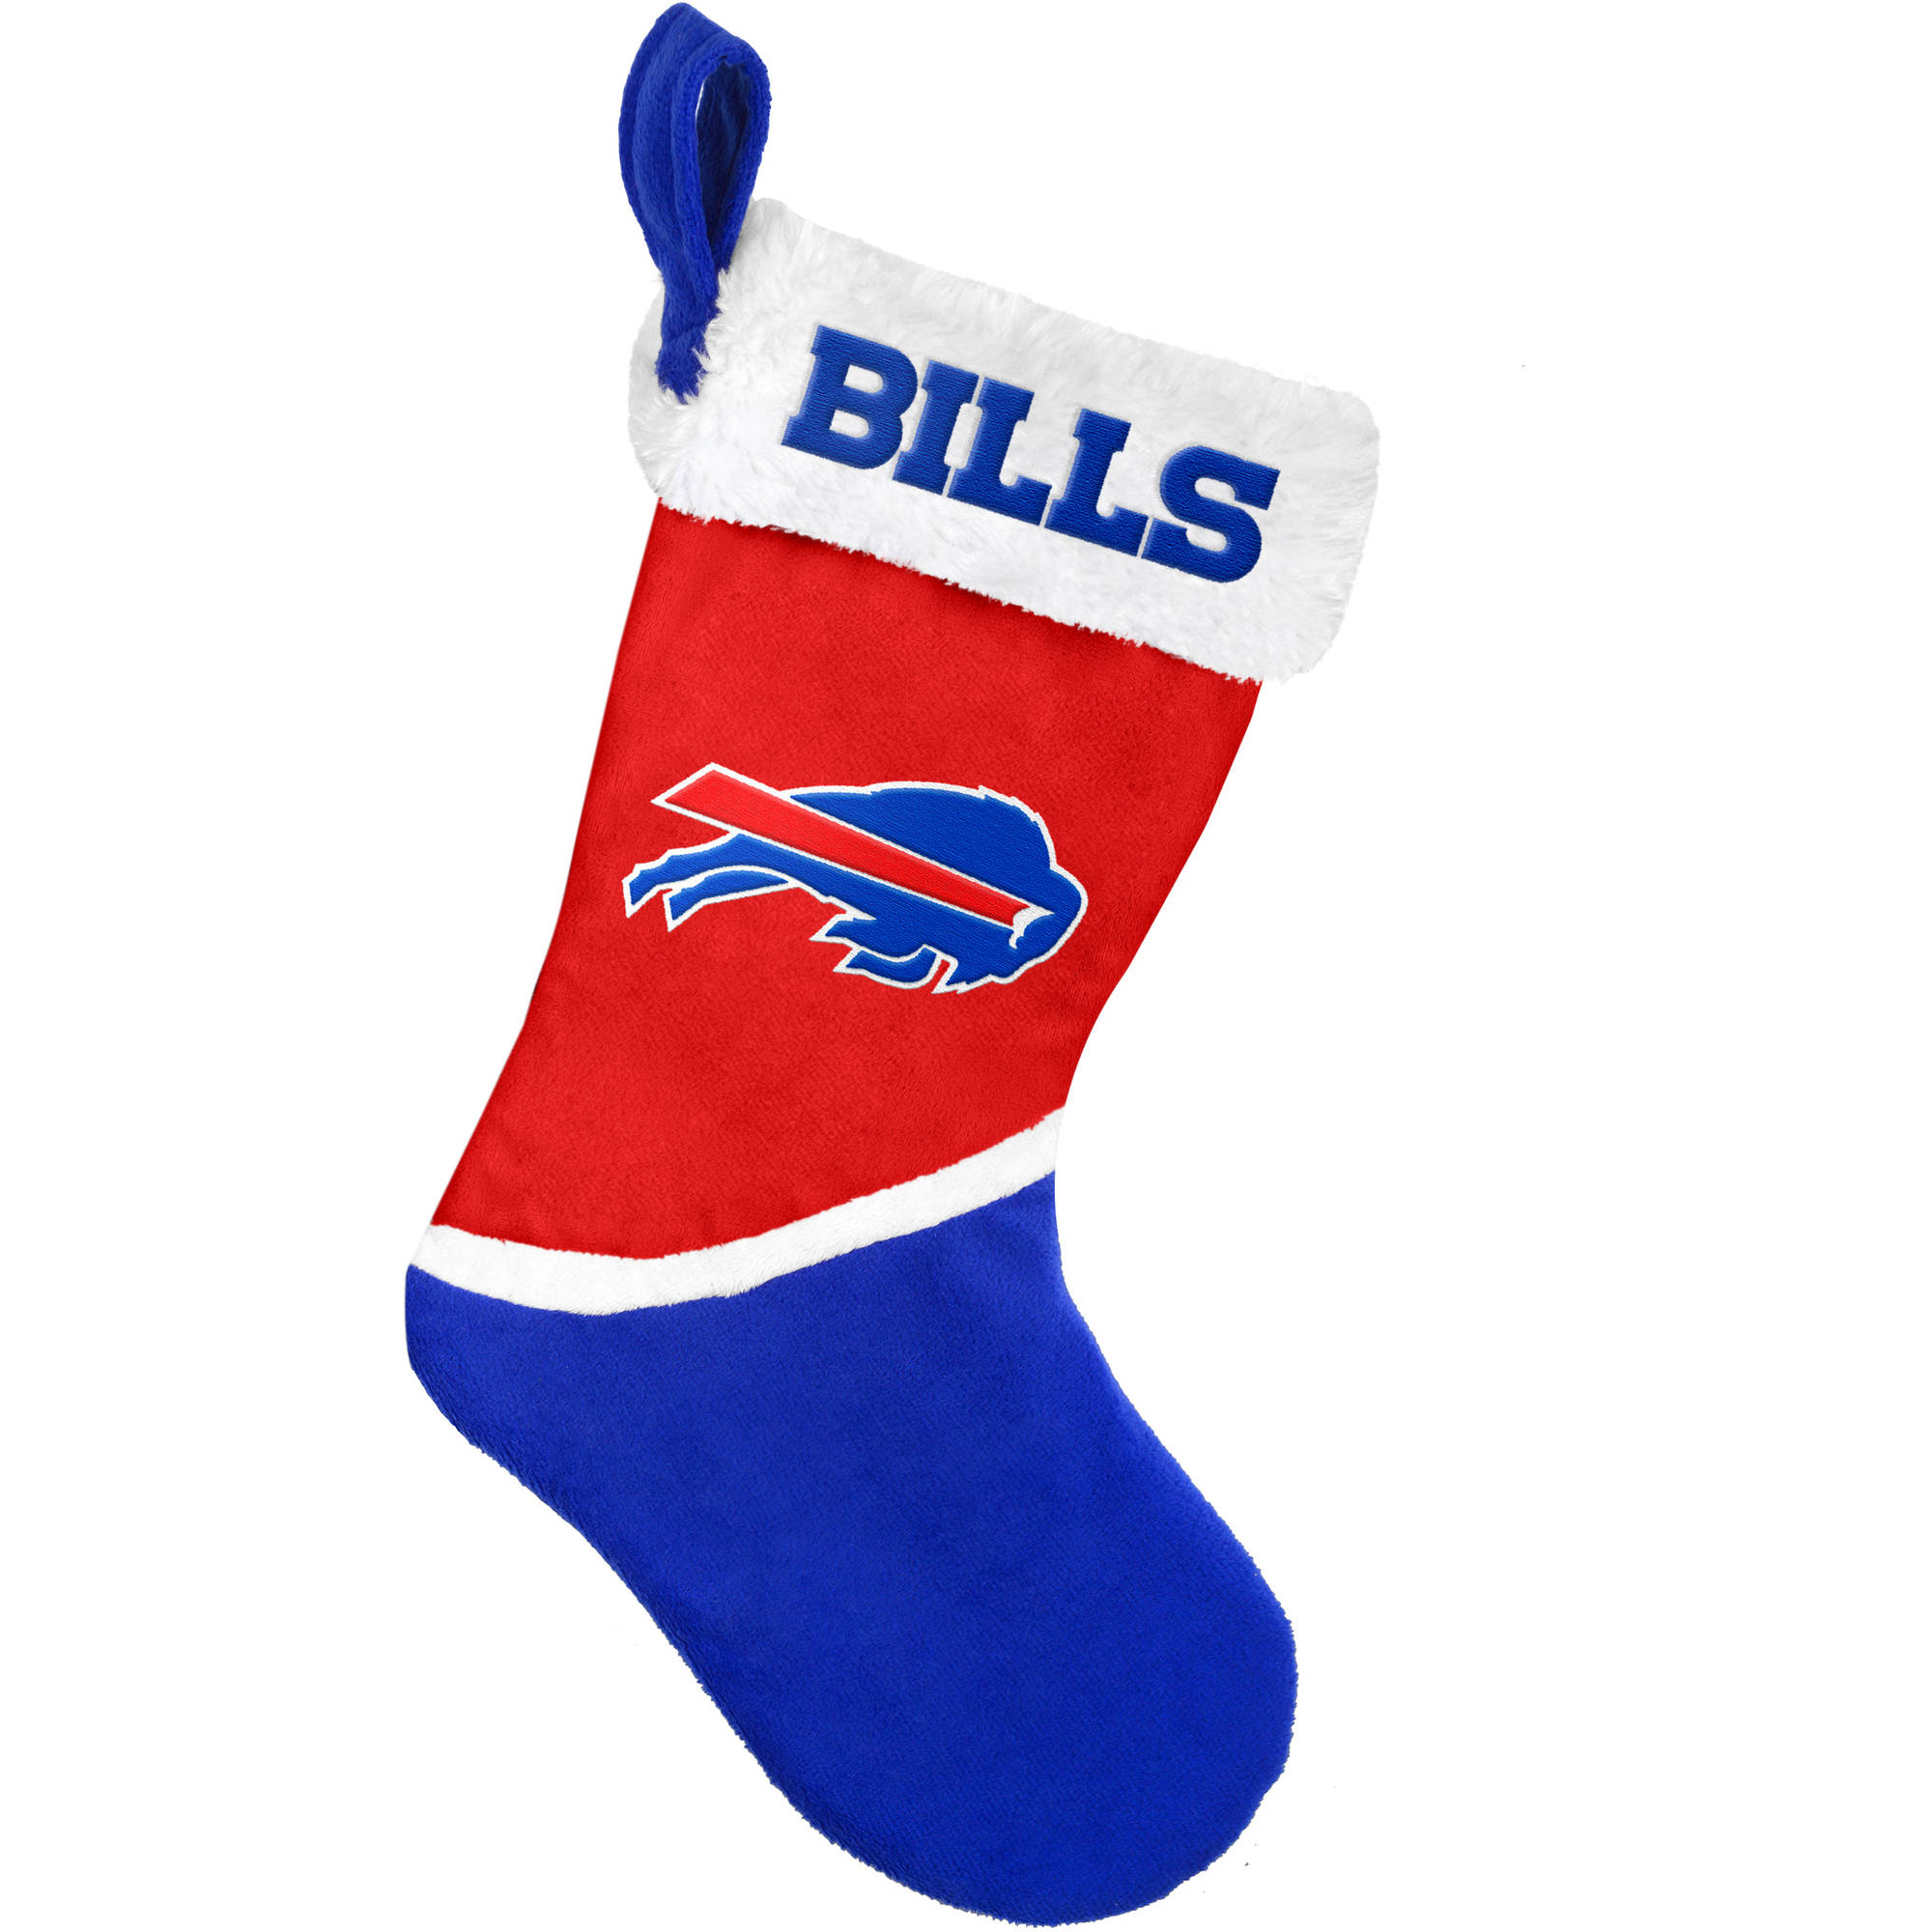 Forever Collectibles NFL 2015 Basic Stocking, Buffalo Bills